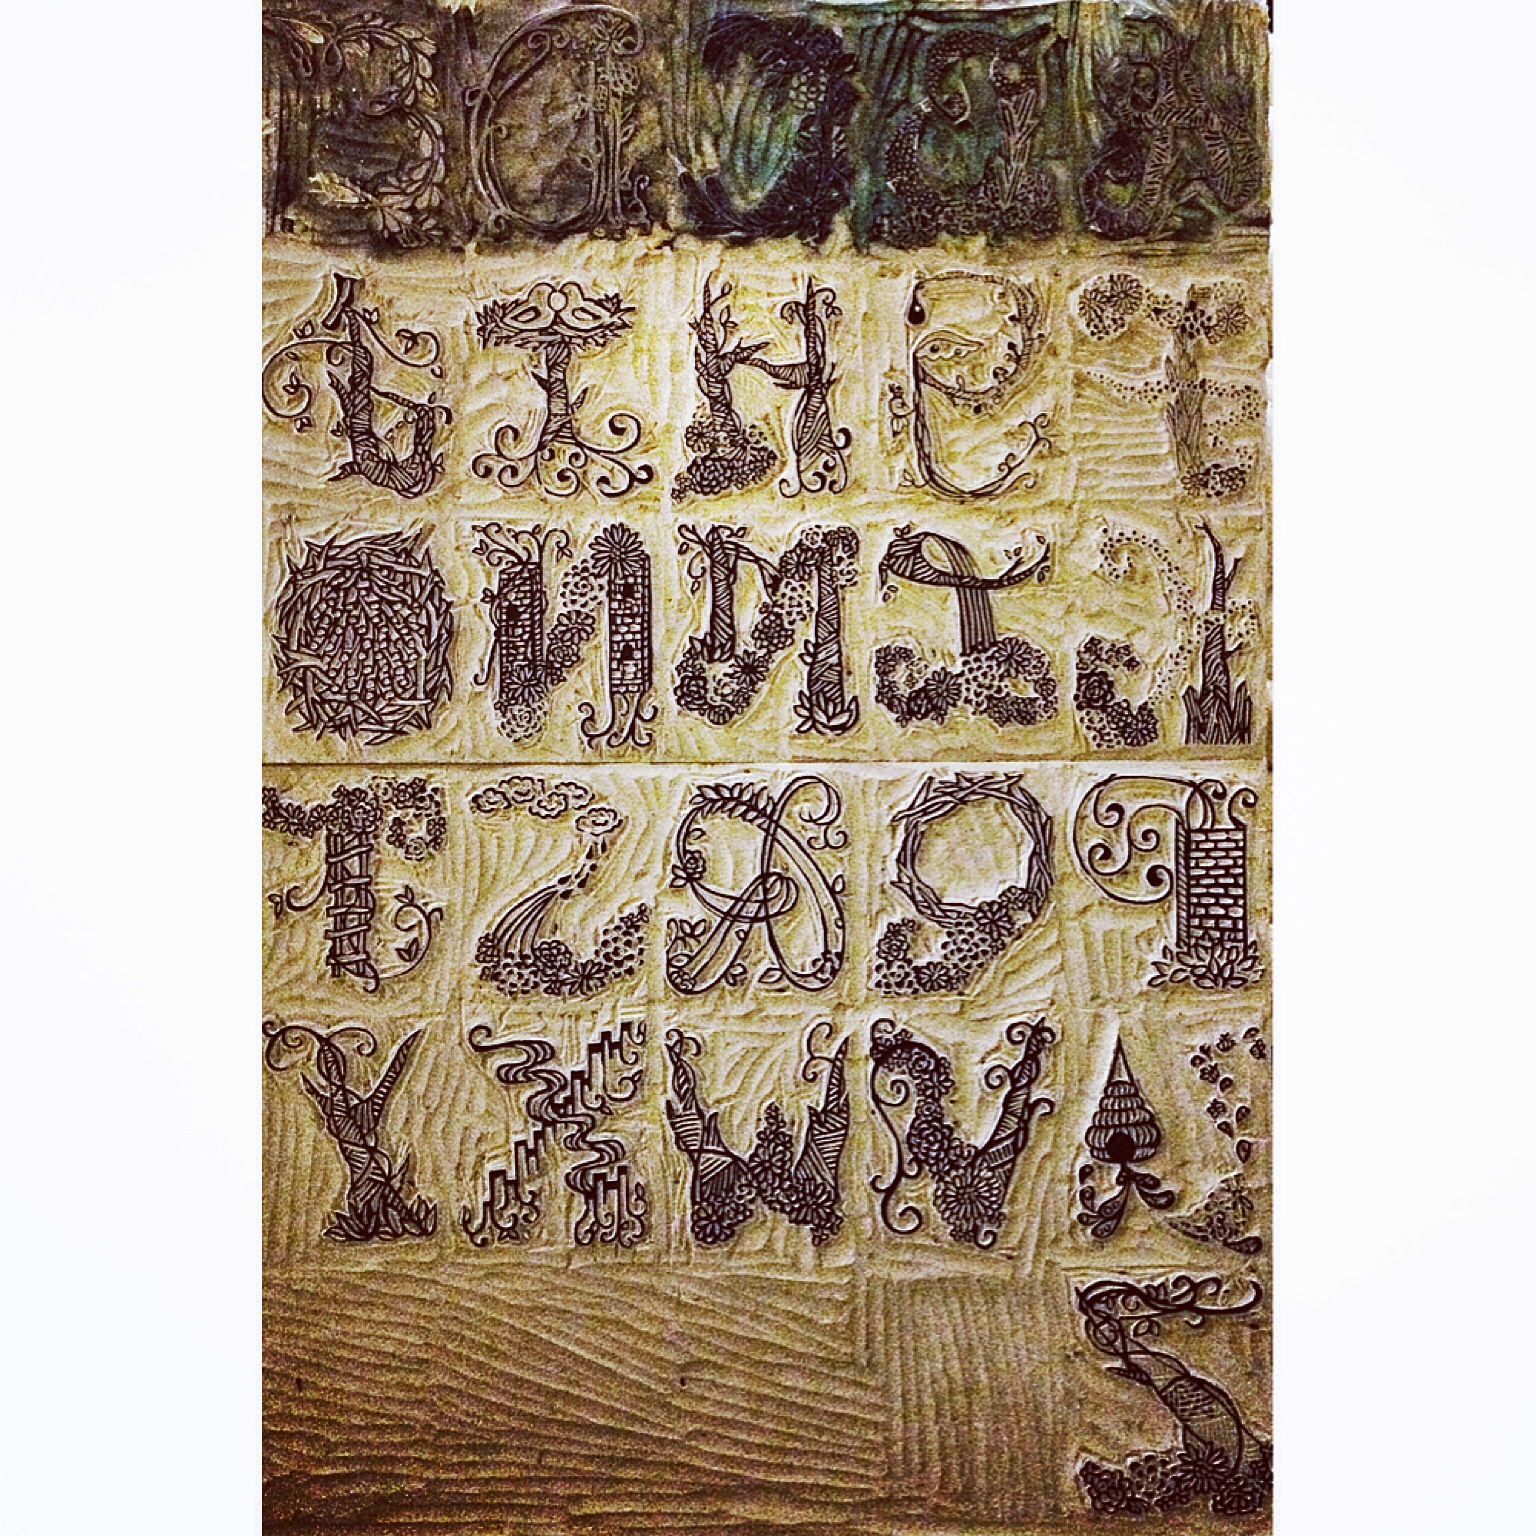 Final Illustrated Alphabet Carvings